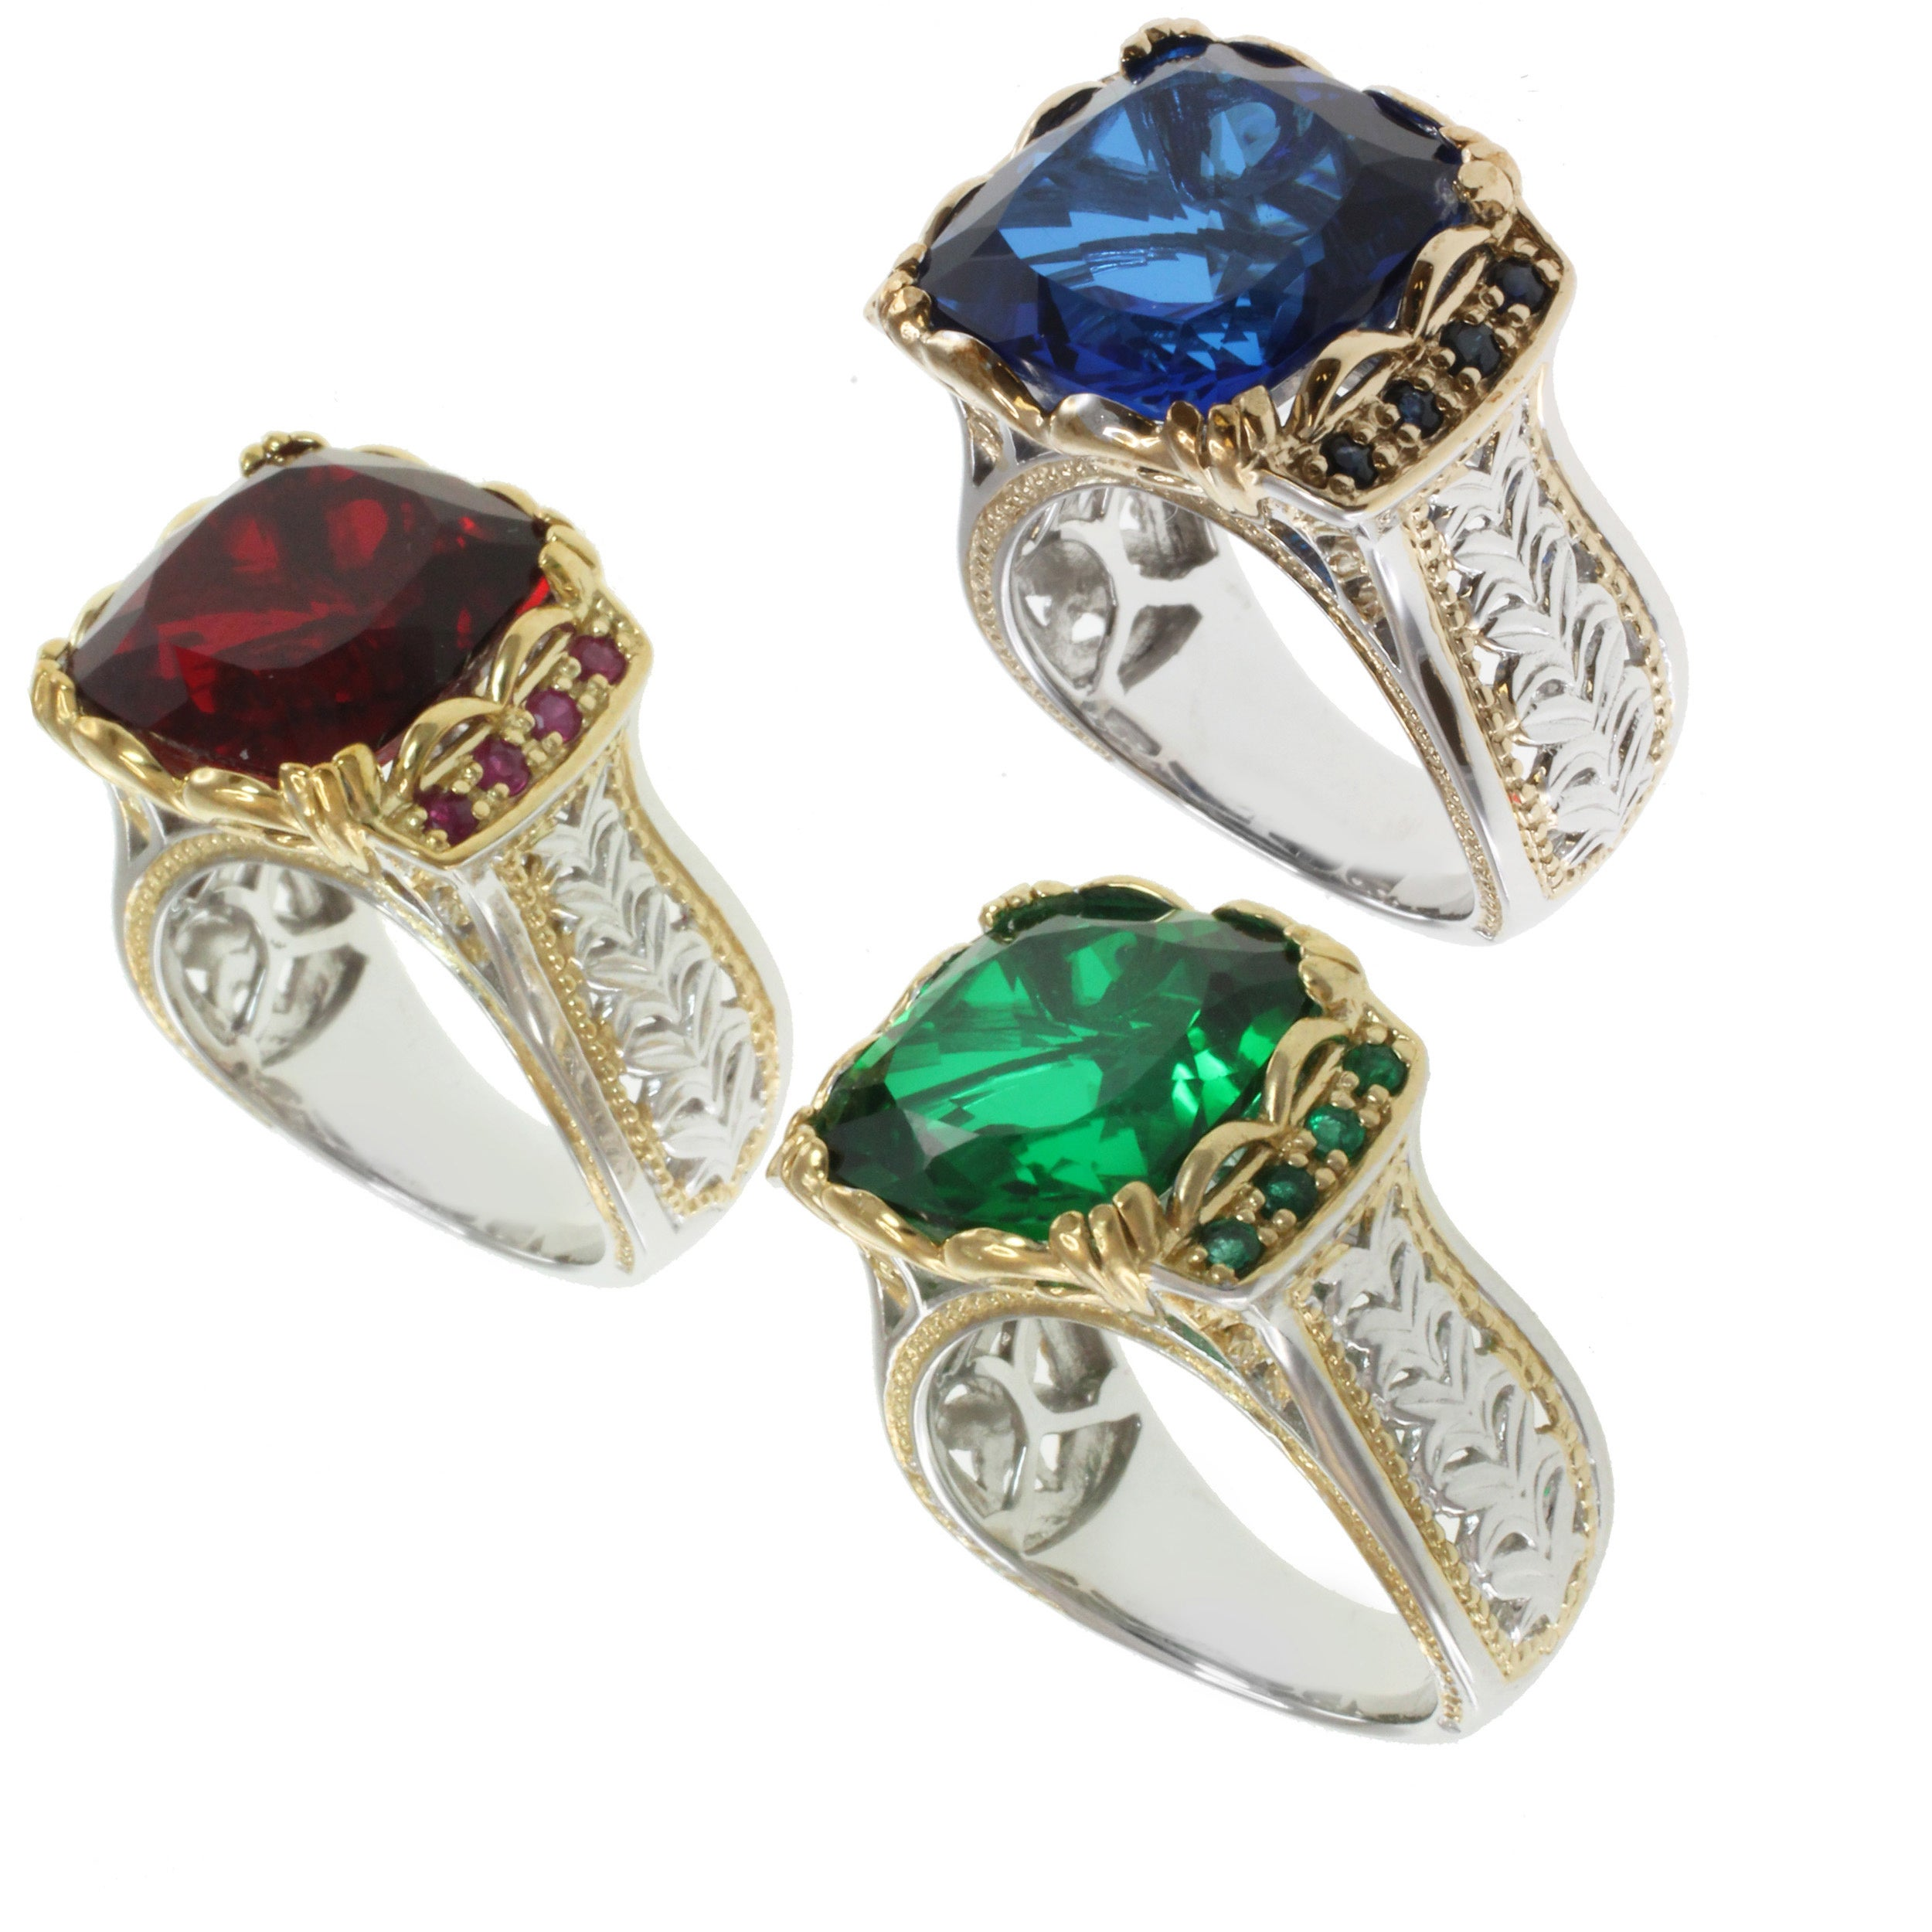 baguette ring nordstrom siena rings emerald emeral bqgrhu diamond jewelry bezel products